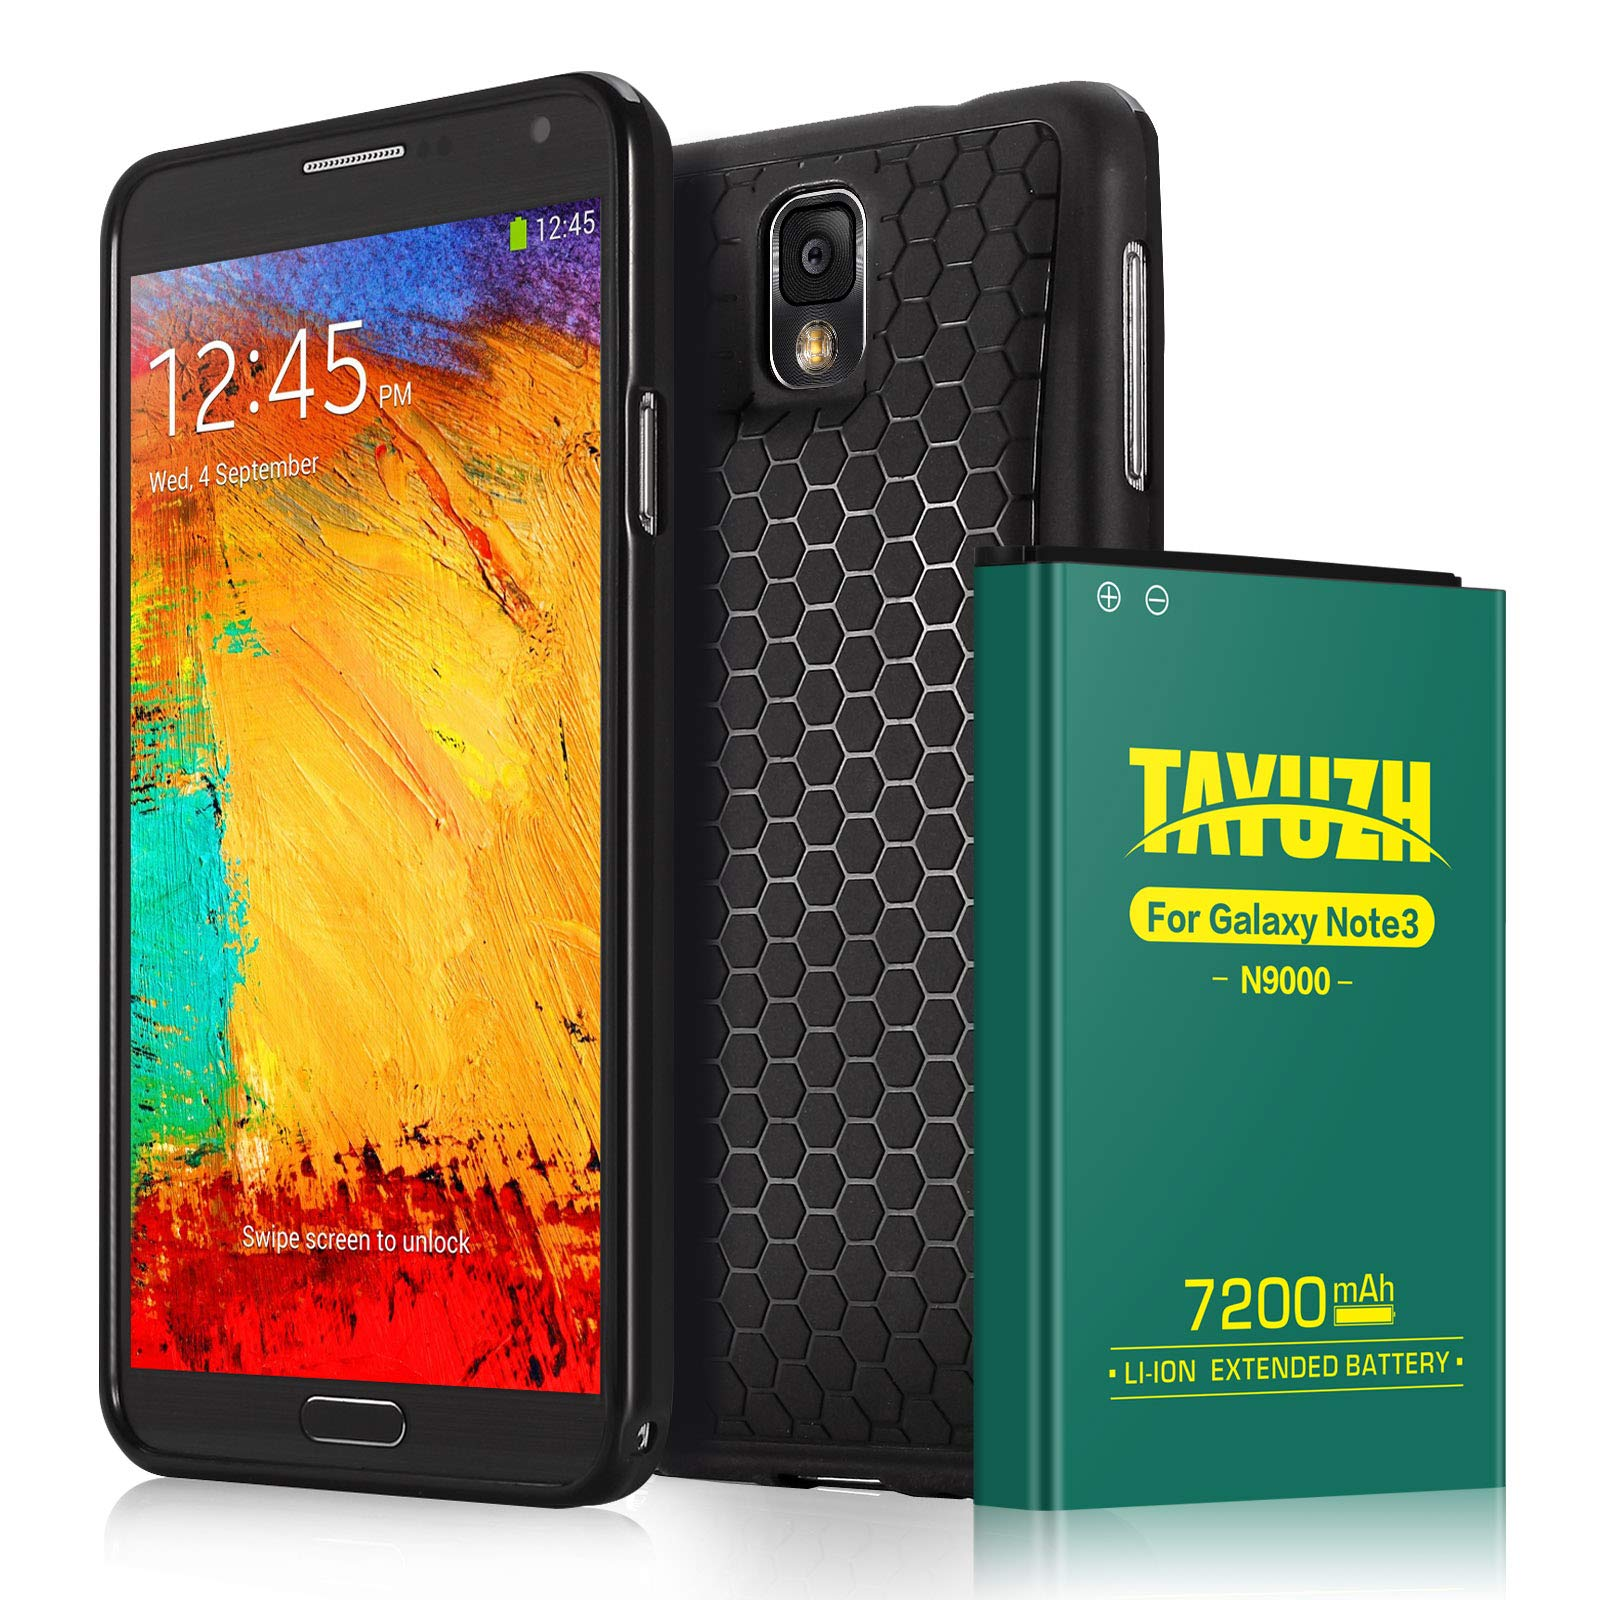 Bateria Celular Tayuzh Note 3 | 7200mah Li Ion Extended & Back Cover & Tpu Case Compatible Samsung Galaxy Note 3 N9000 N